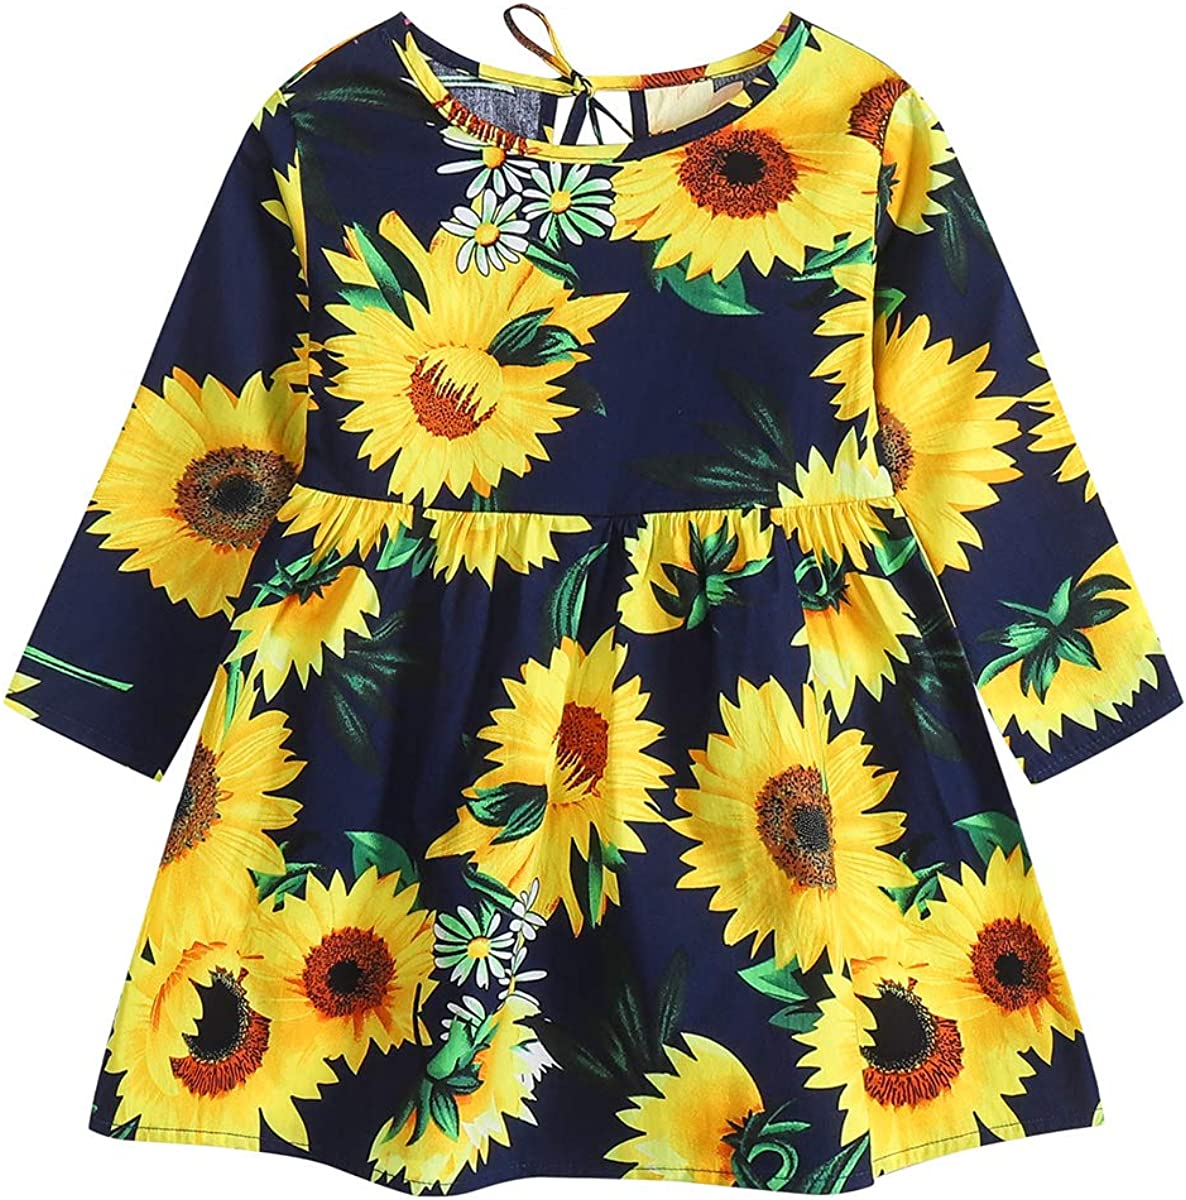 Toddler Girls Ranking TOP20 Summer Dress Long Sleeve Floral Print Dresses Kids Selling and selling